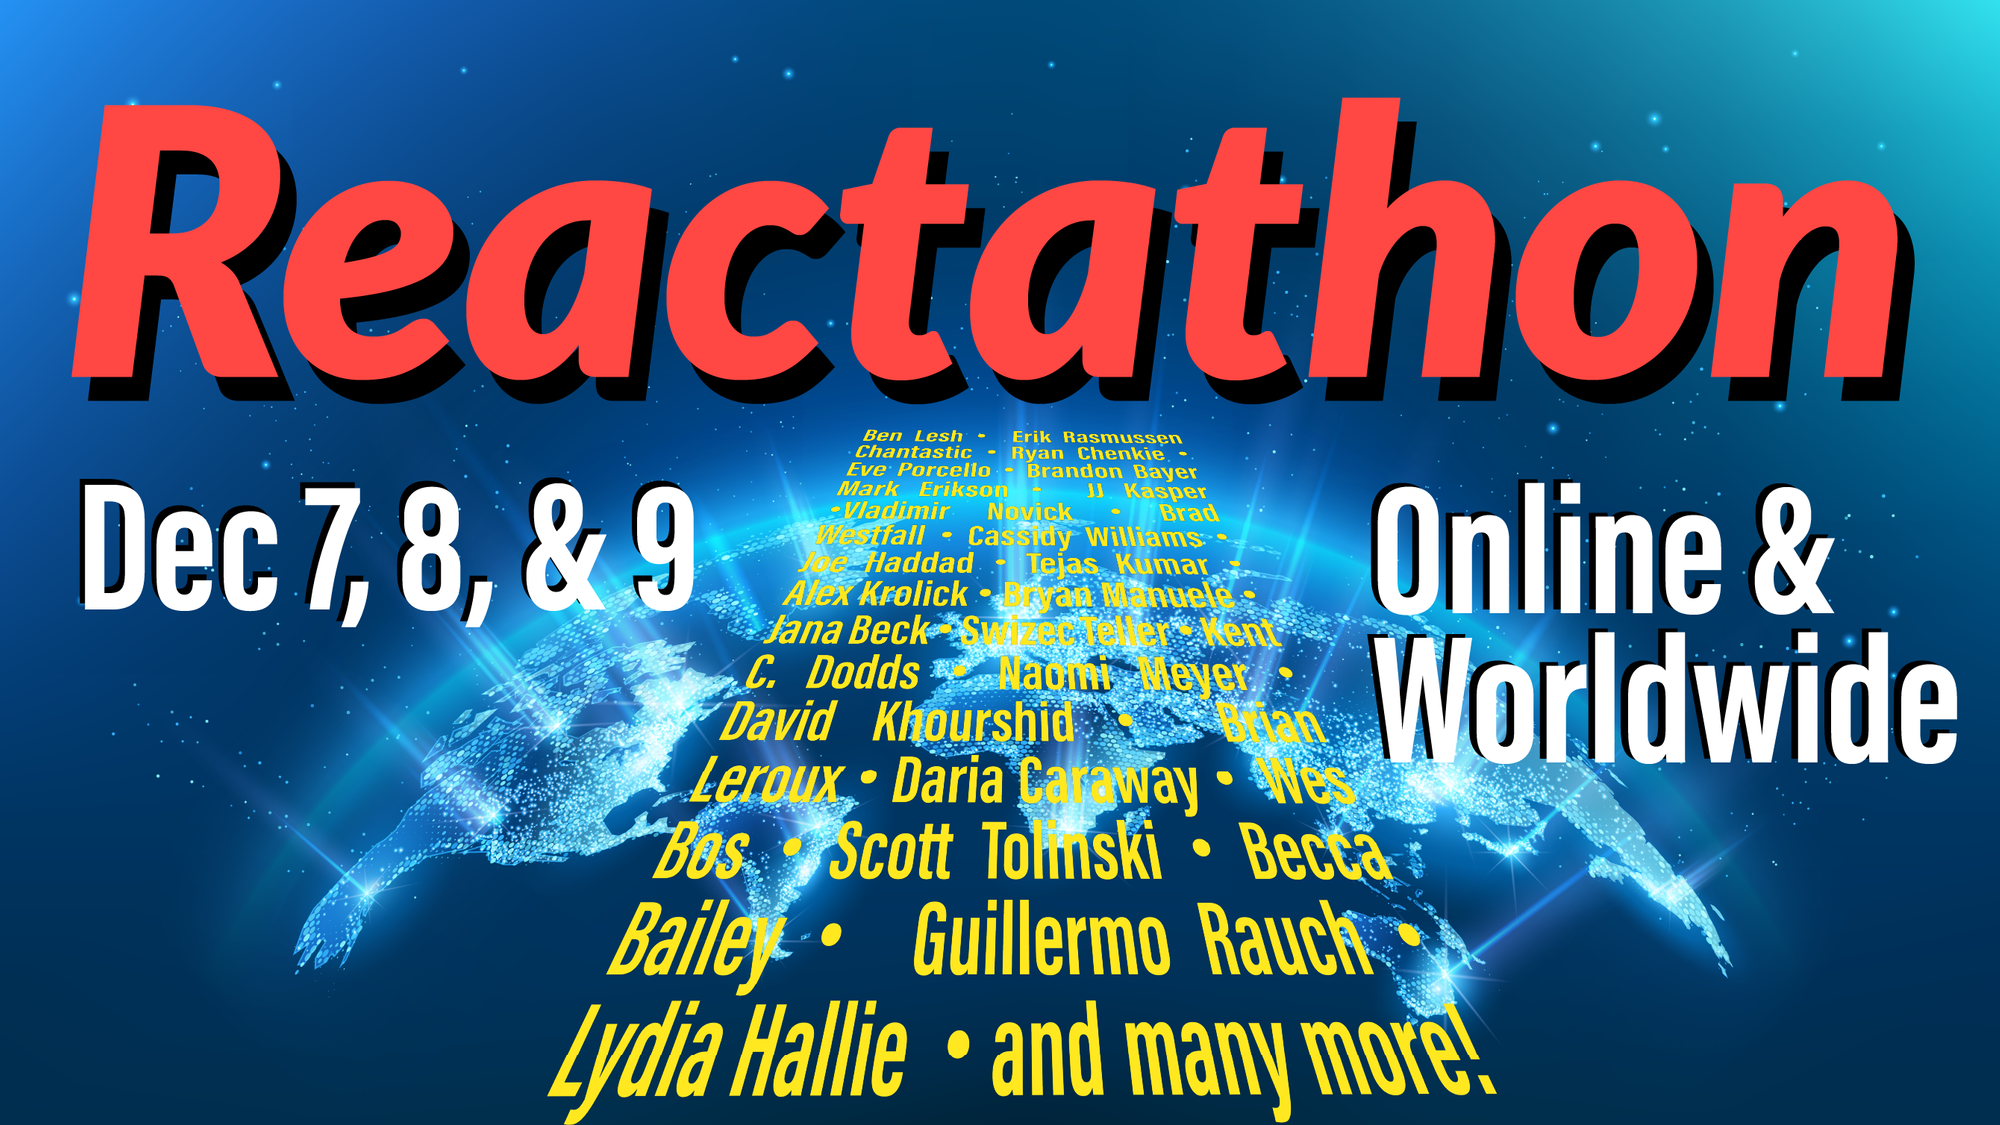 Watch The 2020 Reactathon San Francisco Developer Conference for Free